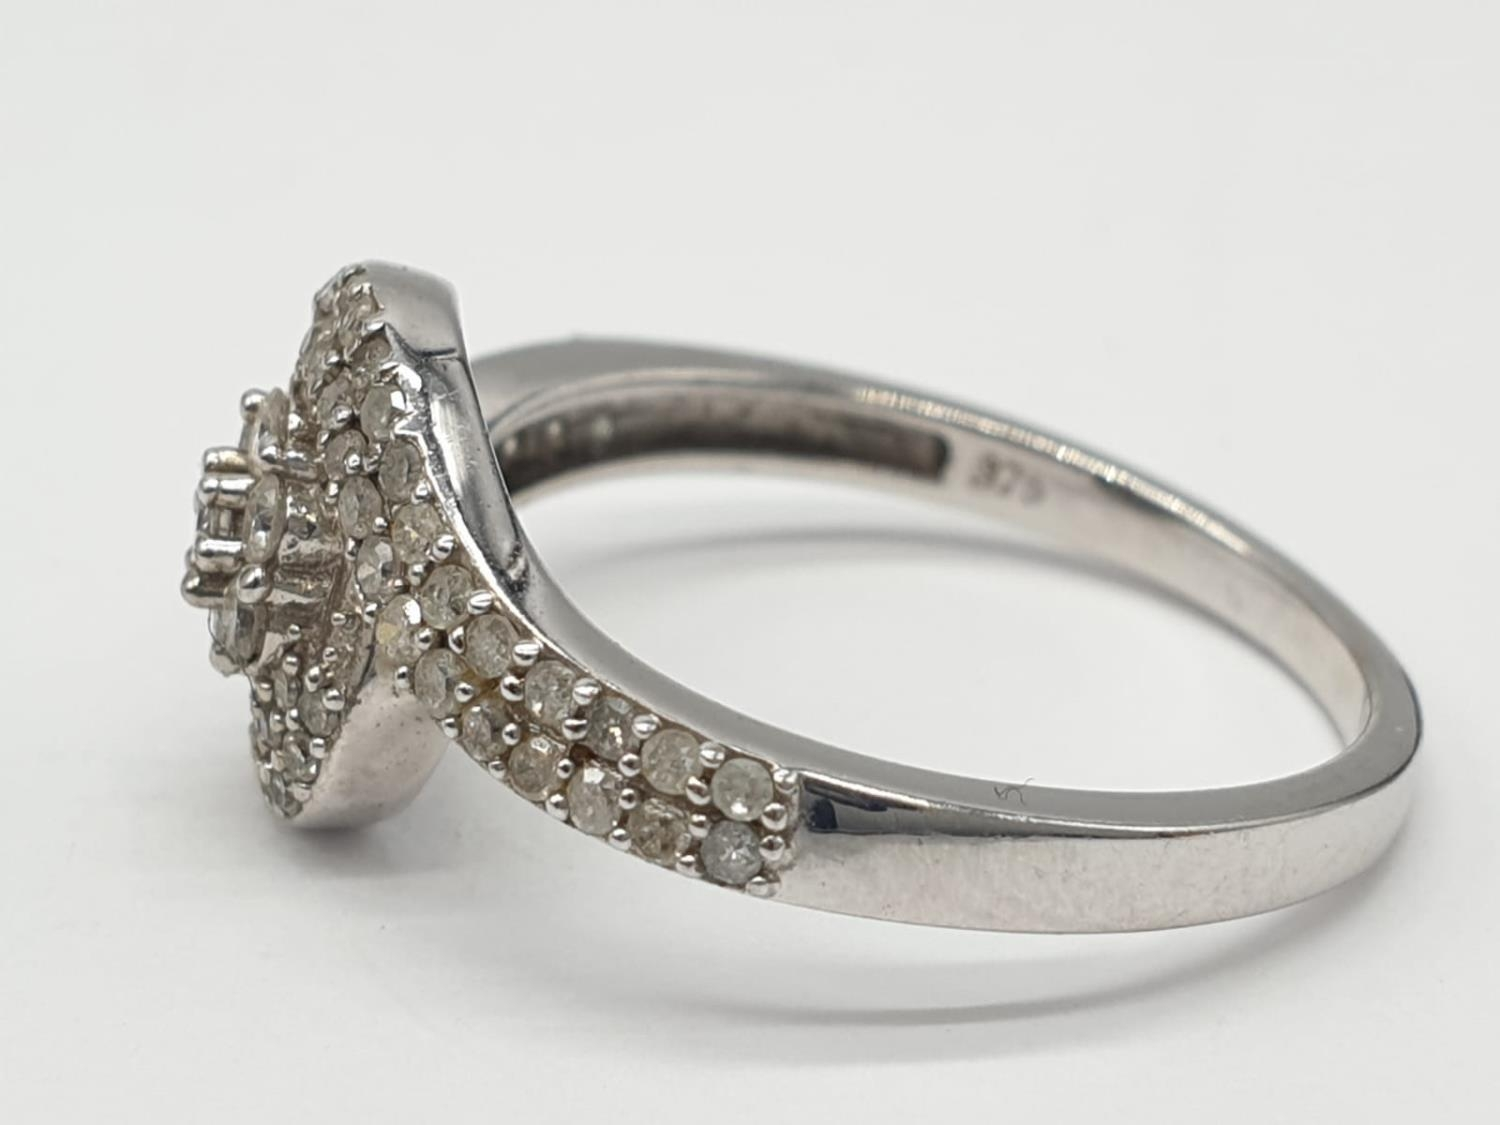 9ct white gold diamond twist cluster ring, 0.50ct diamond approx, weight 2.5g and size P - Image 3 of 7